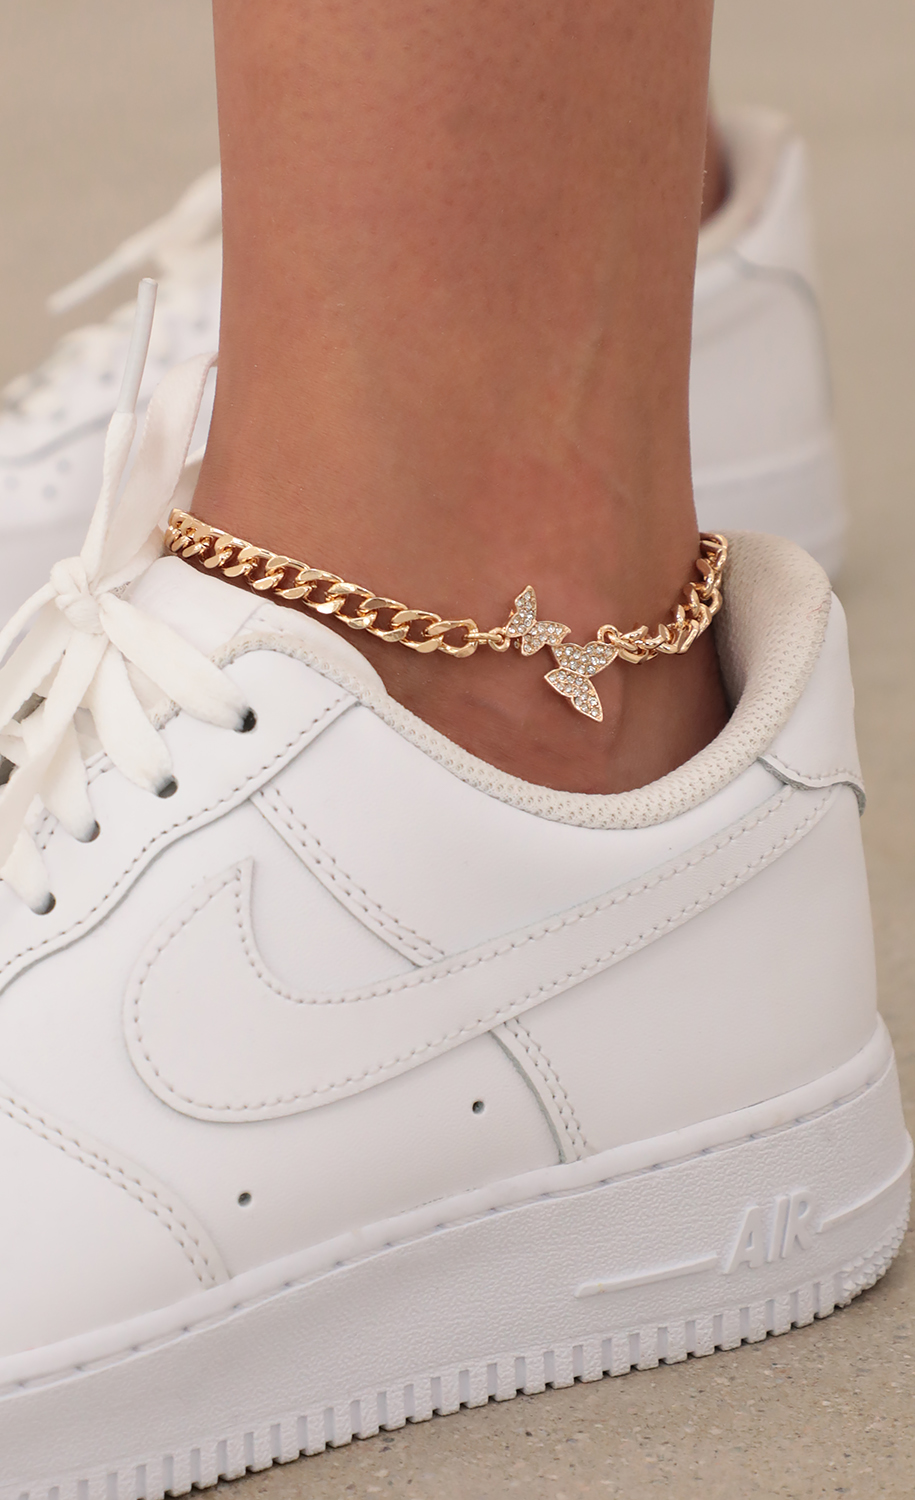 Cuban Chain Anklet with Pave Butterflies